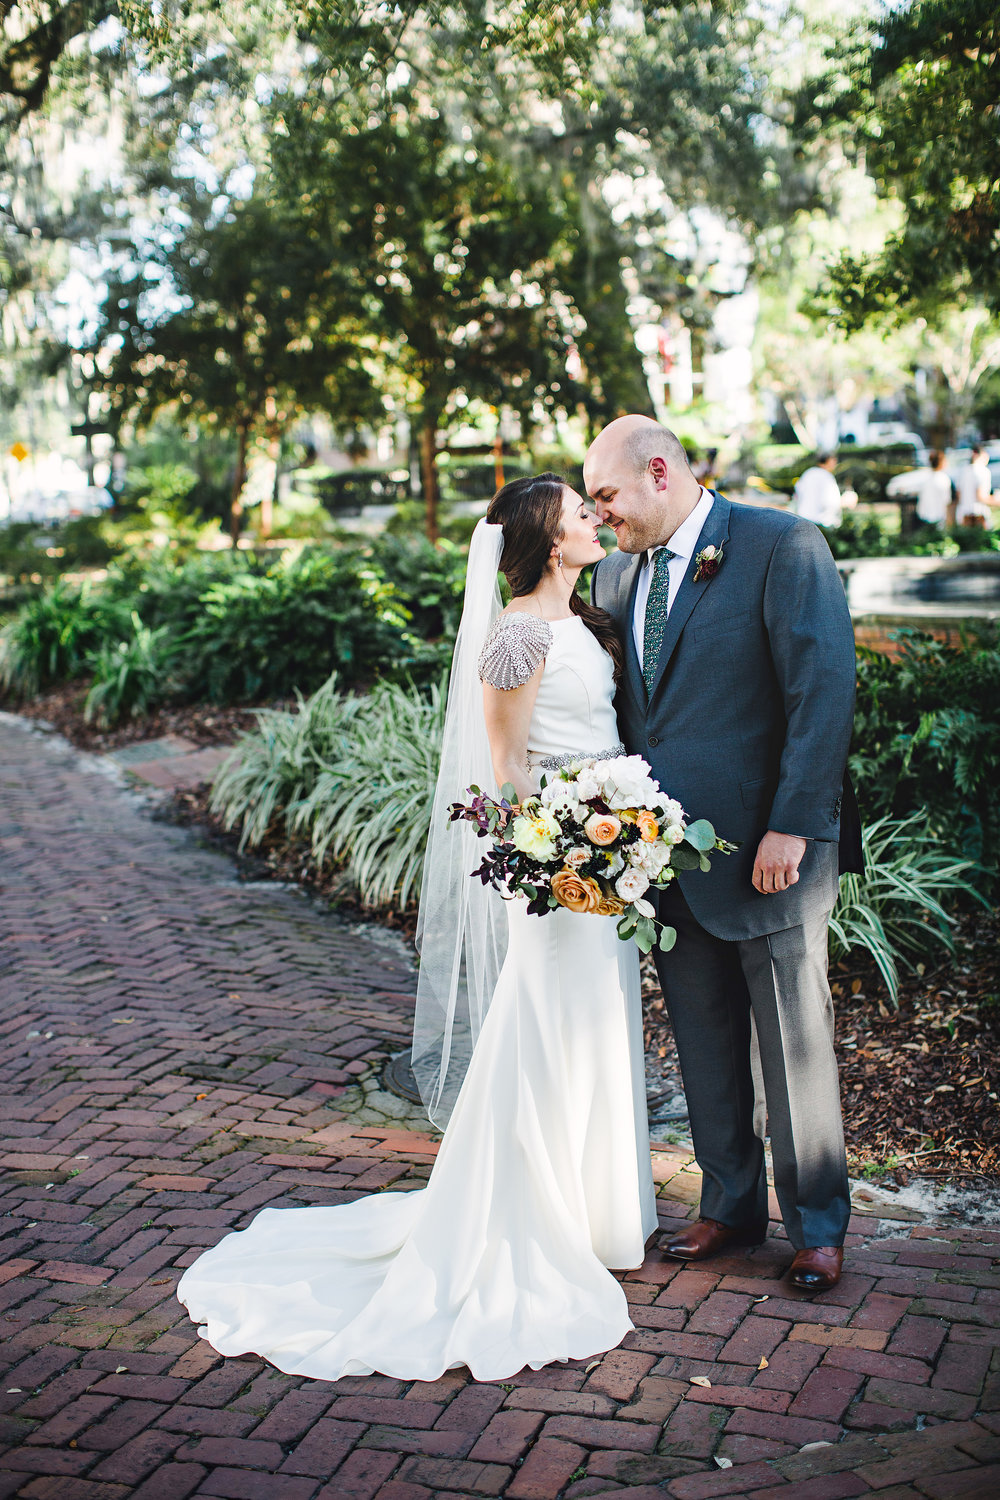 izzy-hudgins-photography-savannah-wedding-ivory-and-beau-bridal-boutique-savannah-wedding-planner-colonial-house-of-flowers-forsyth-park-wedding-old-fort-jackson-wedding-squidwed-films-savannah-boutique-savannah-weddings-24.jpg